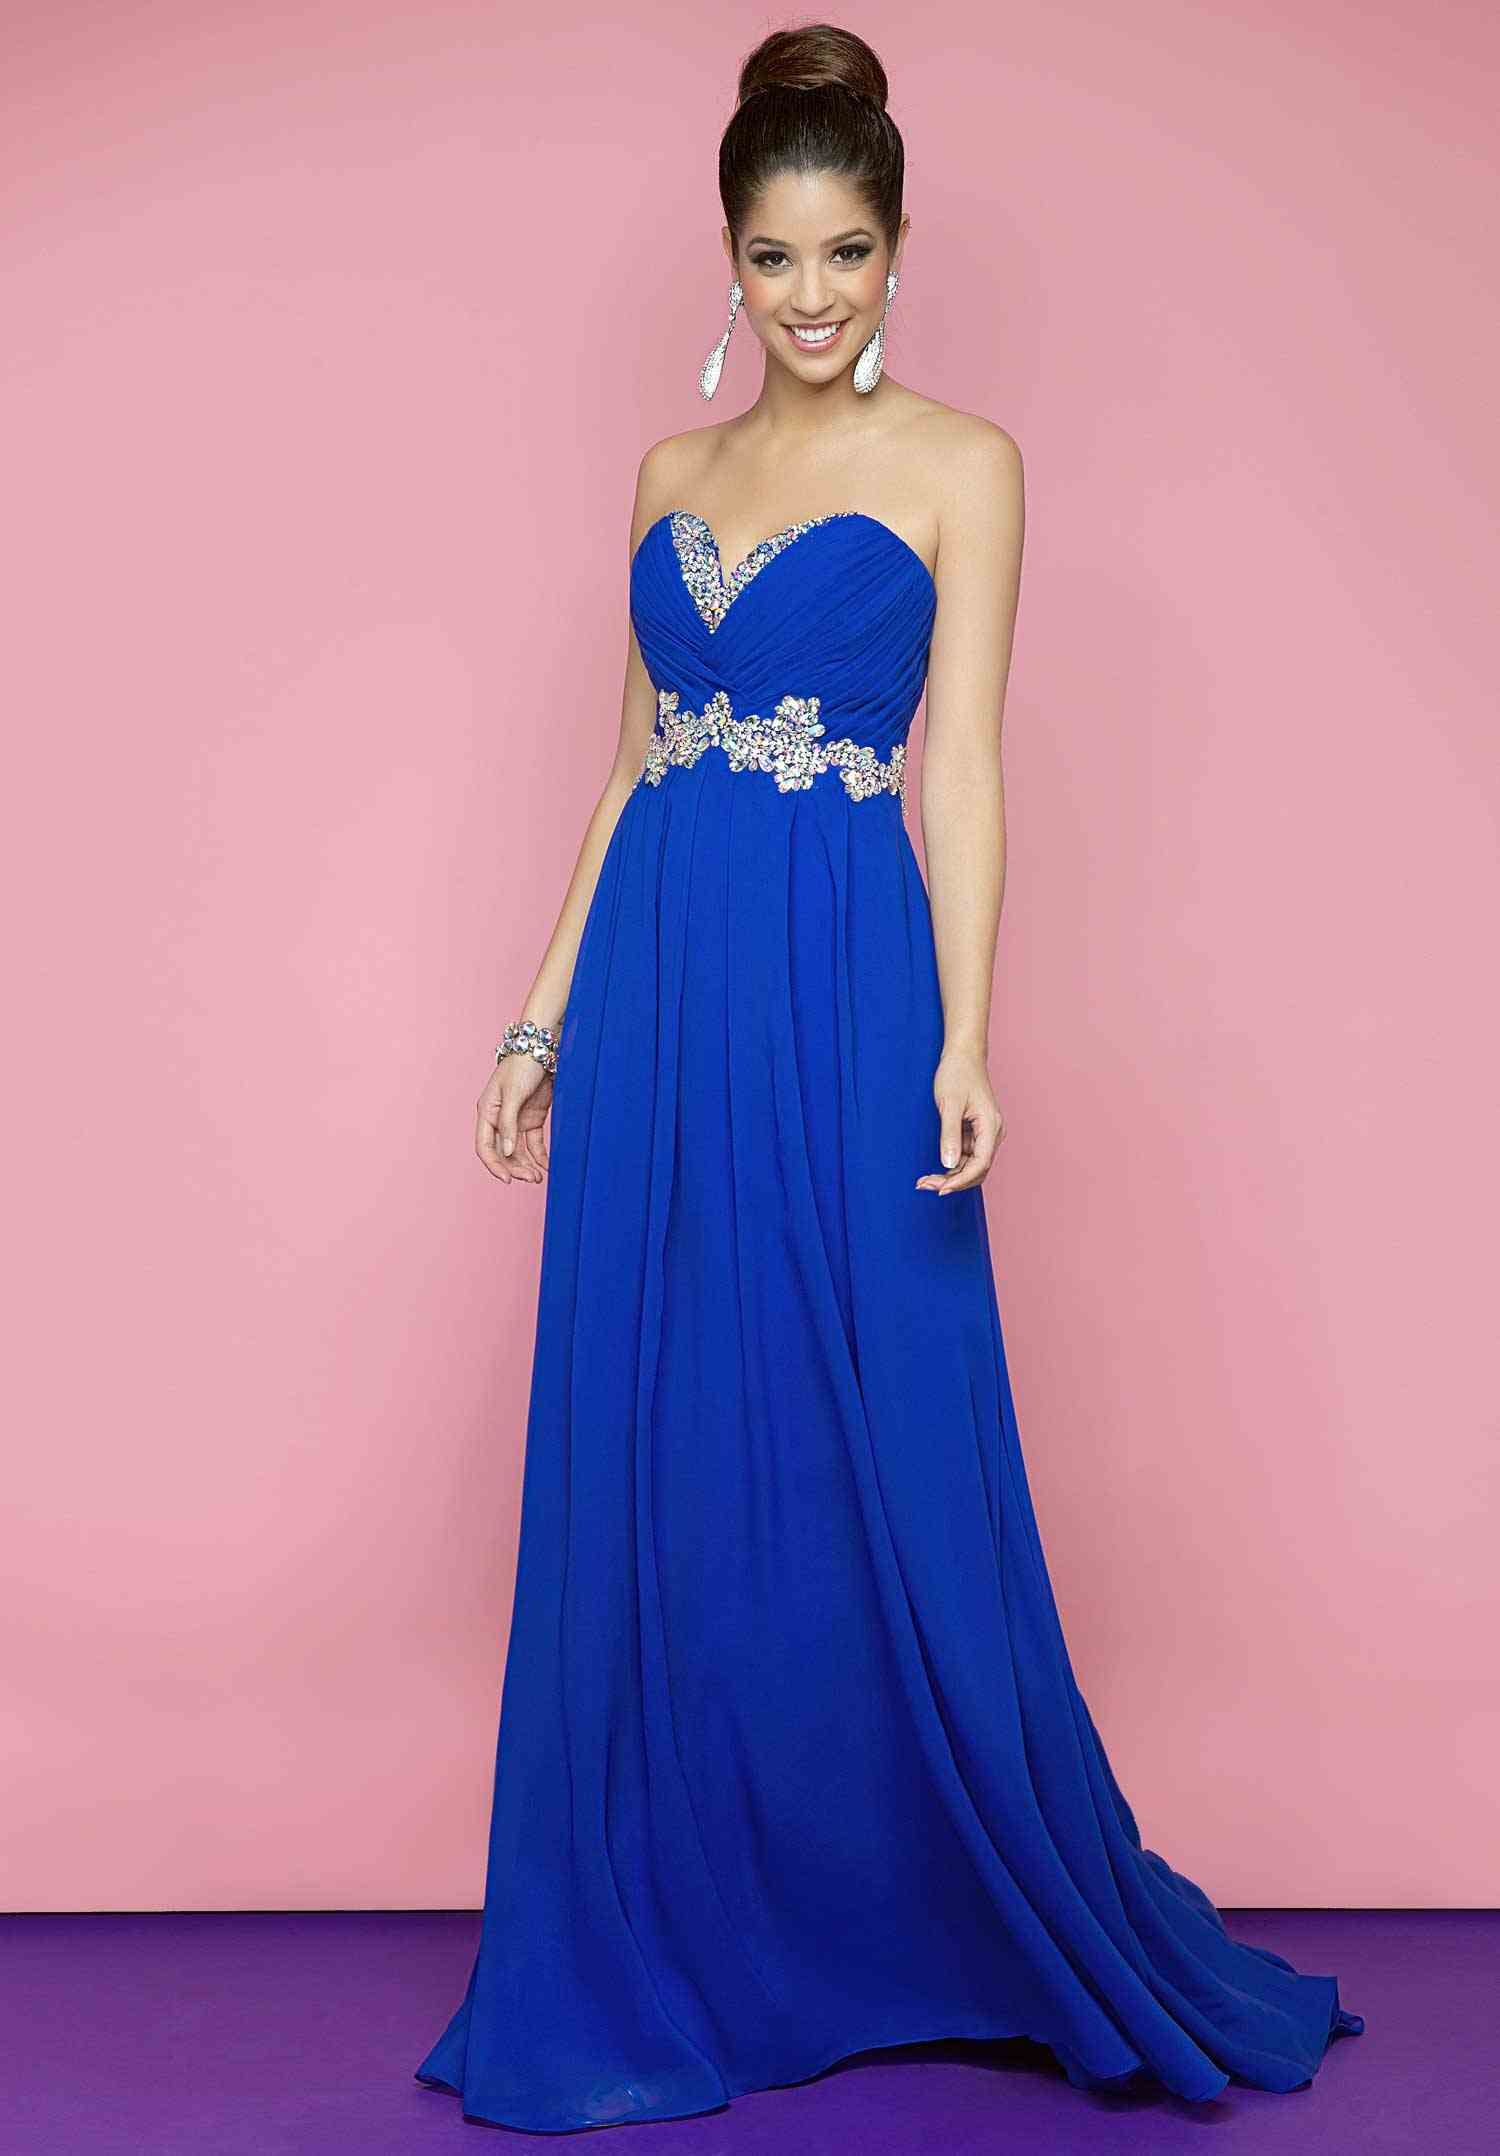 Royal Blue Strapless Prom Dress